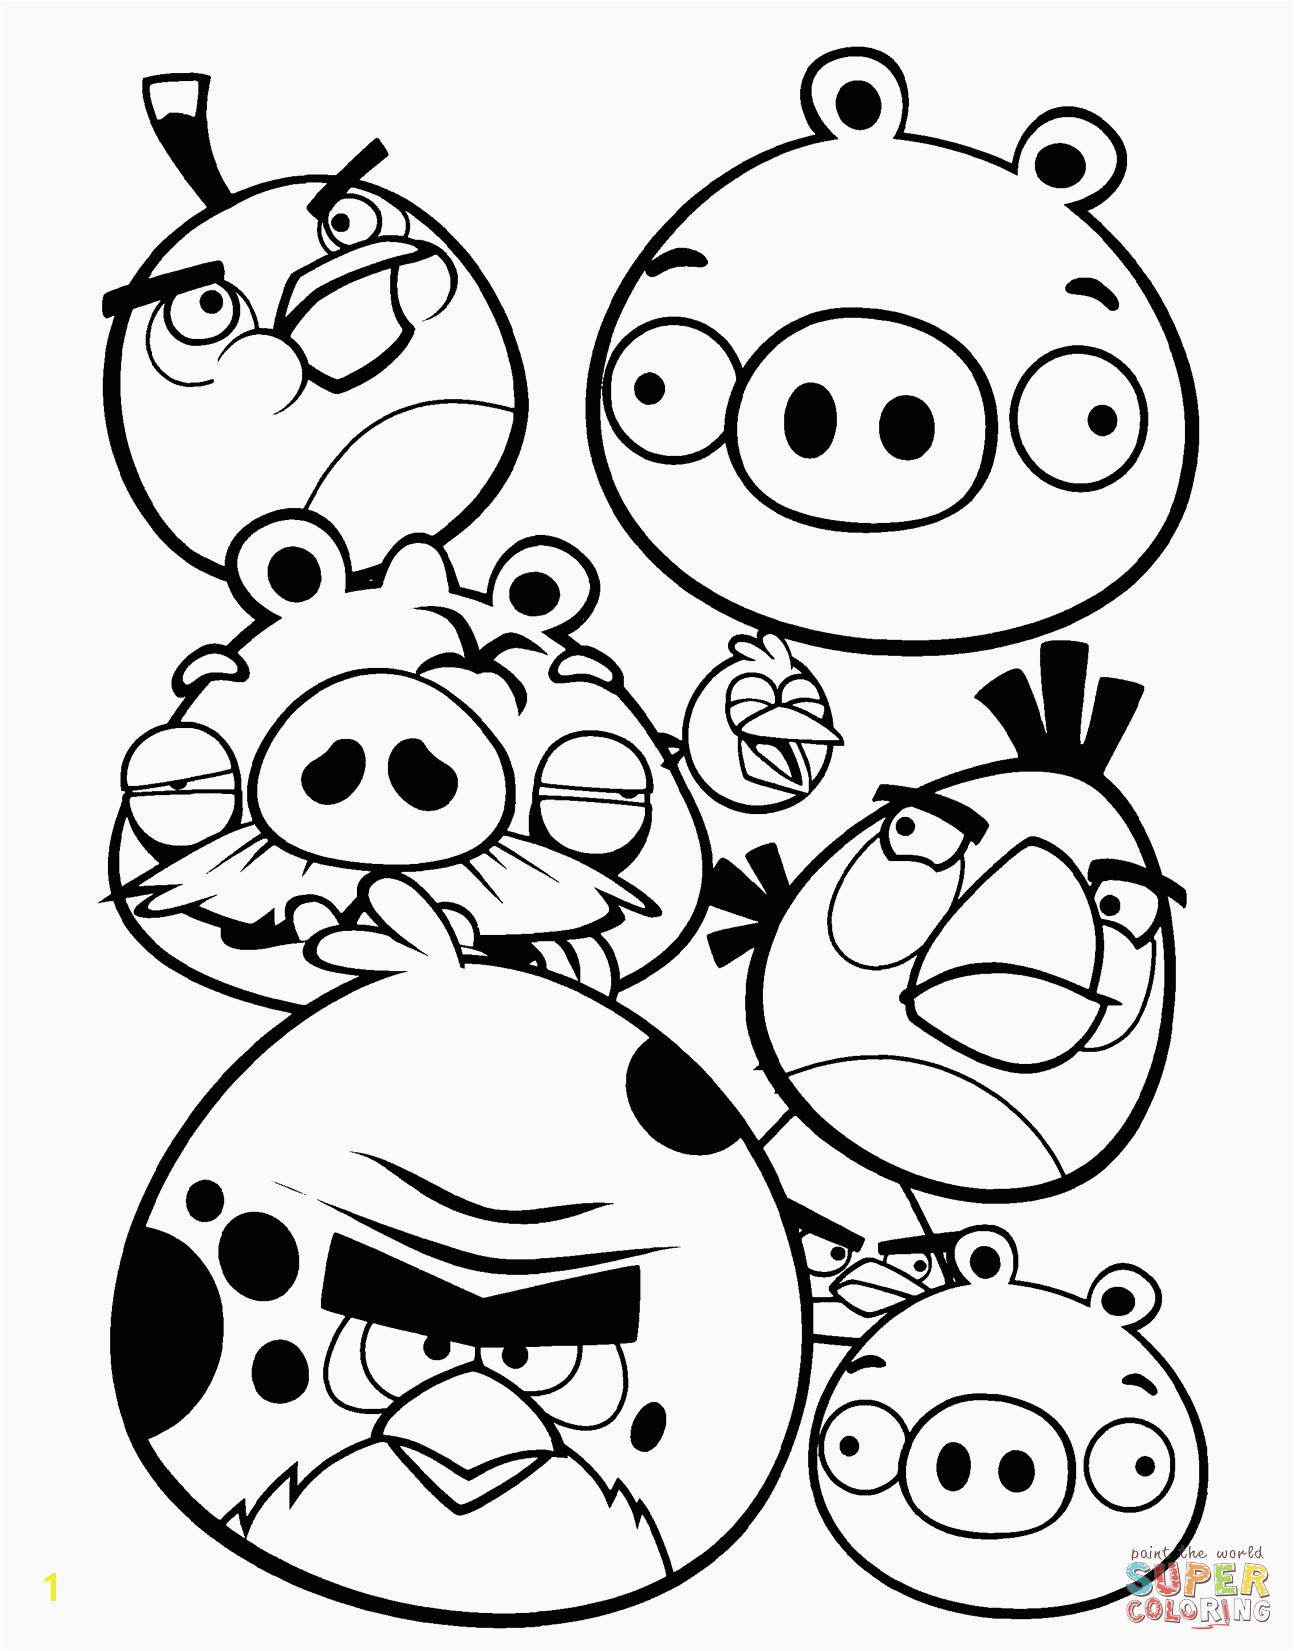 Green Angry Bird Coloring Pages Luxury Coloring Pages Angry Birds Space Katesgrove